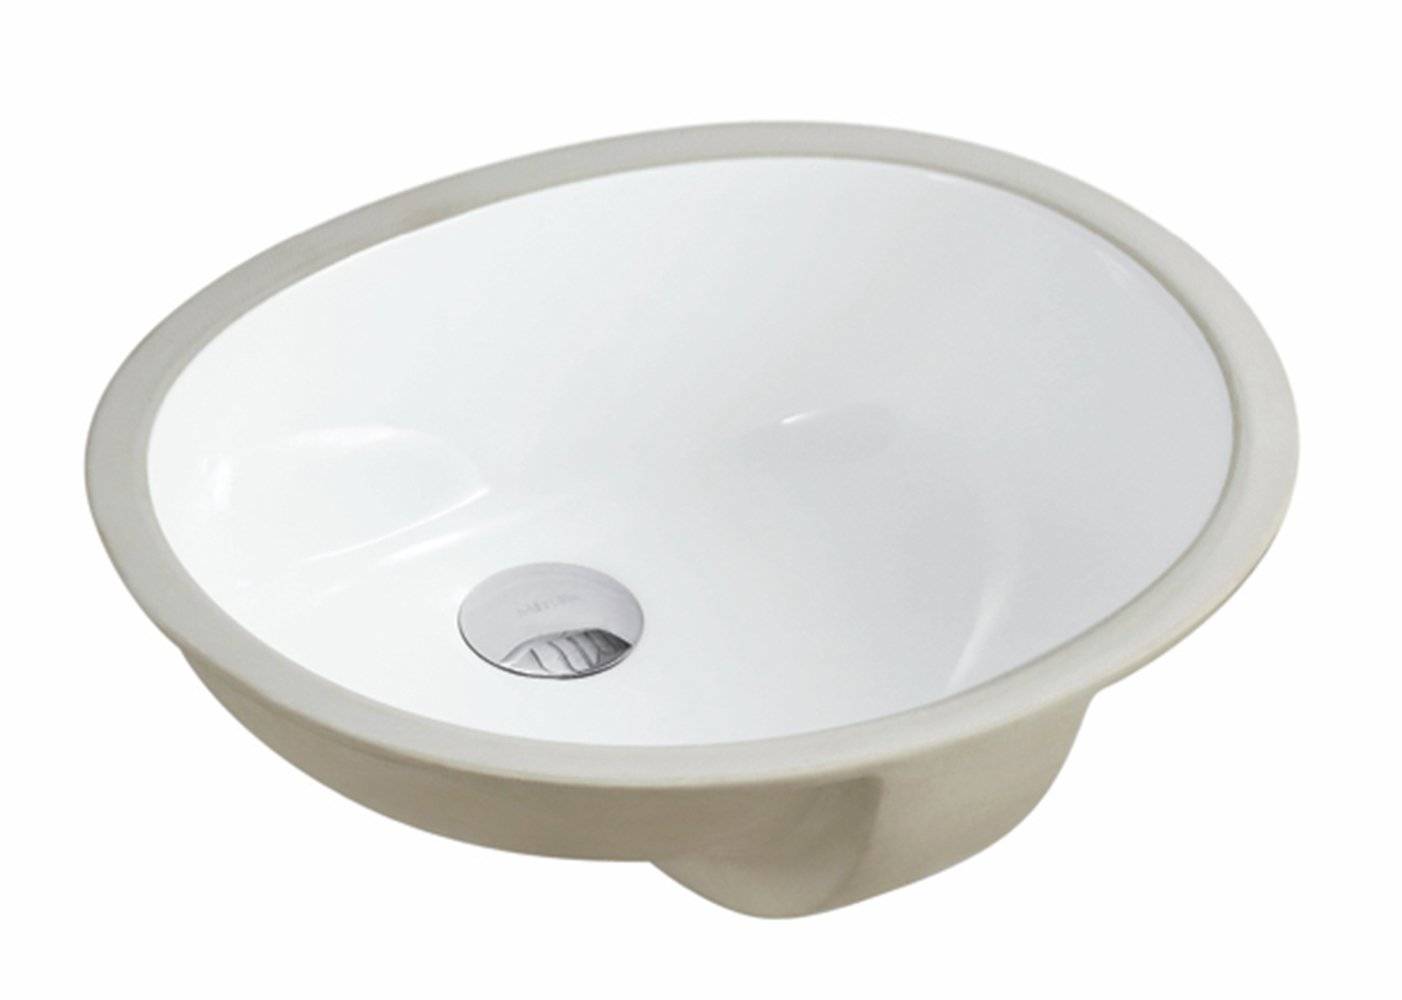 KINGSMAN 17.5 INCH Oval Undermount Vitreous Ceramic Lavatory Vanity Bathroom Sink Pure White (17.5 INCH) by KINGSMAN